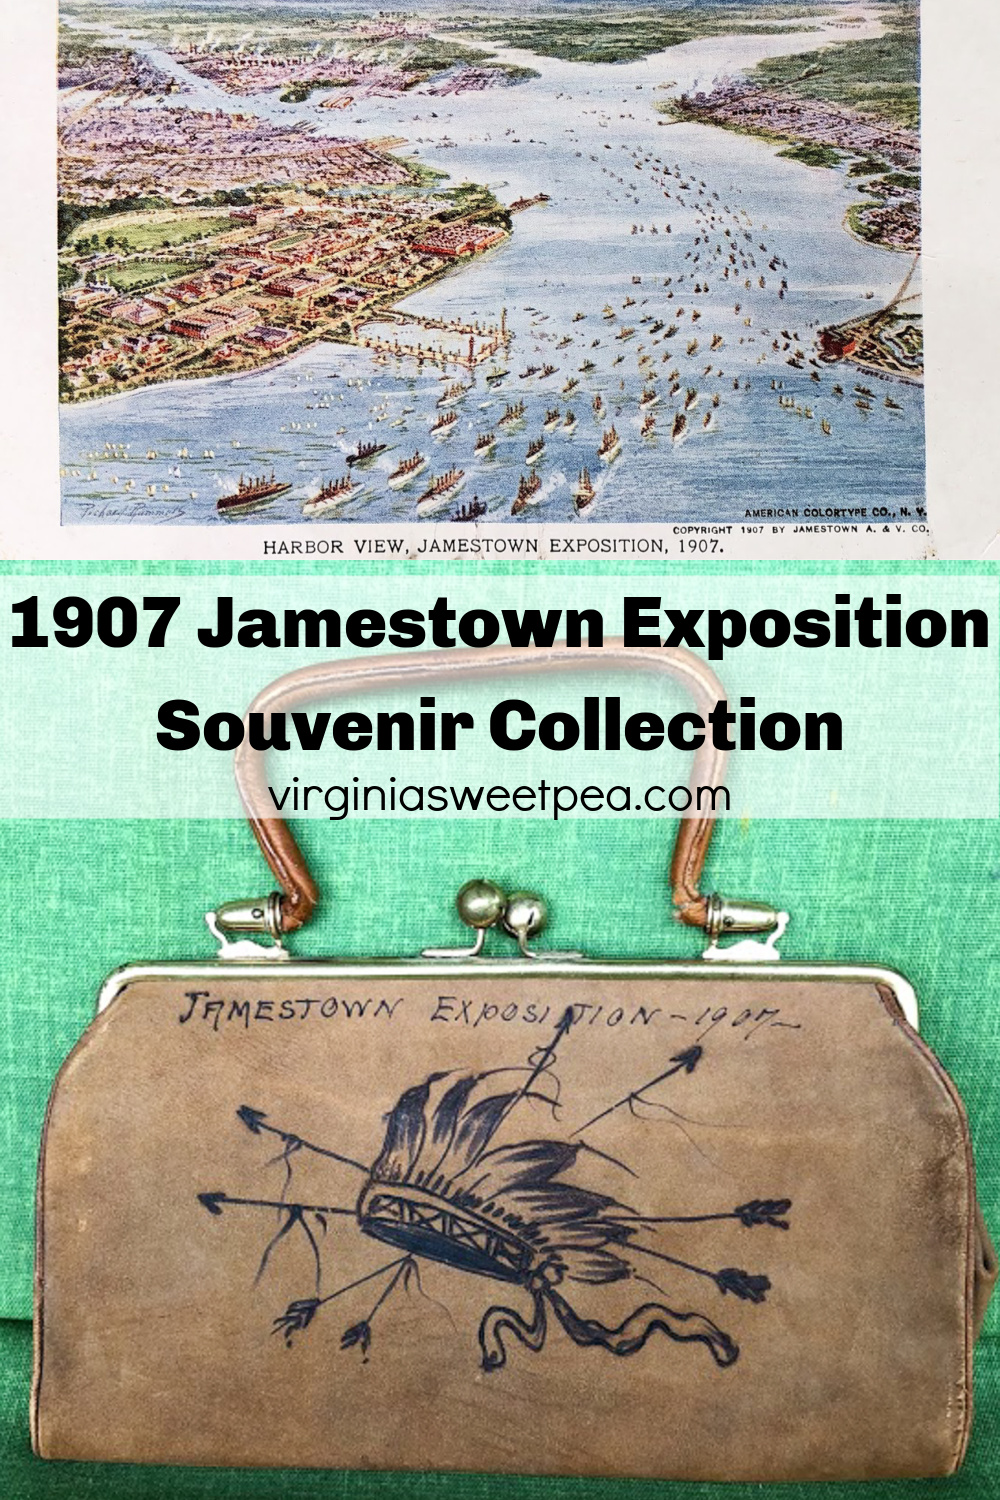 Souvenir Collection from the 1907 Jamestown Exposition - See unique souvenirs from the Jamestown Exposition in 1907 saved by my family.  #jamestownexposition #1907 #jamestown via @spaula